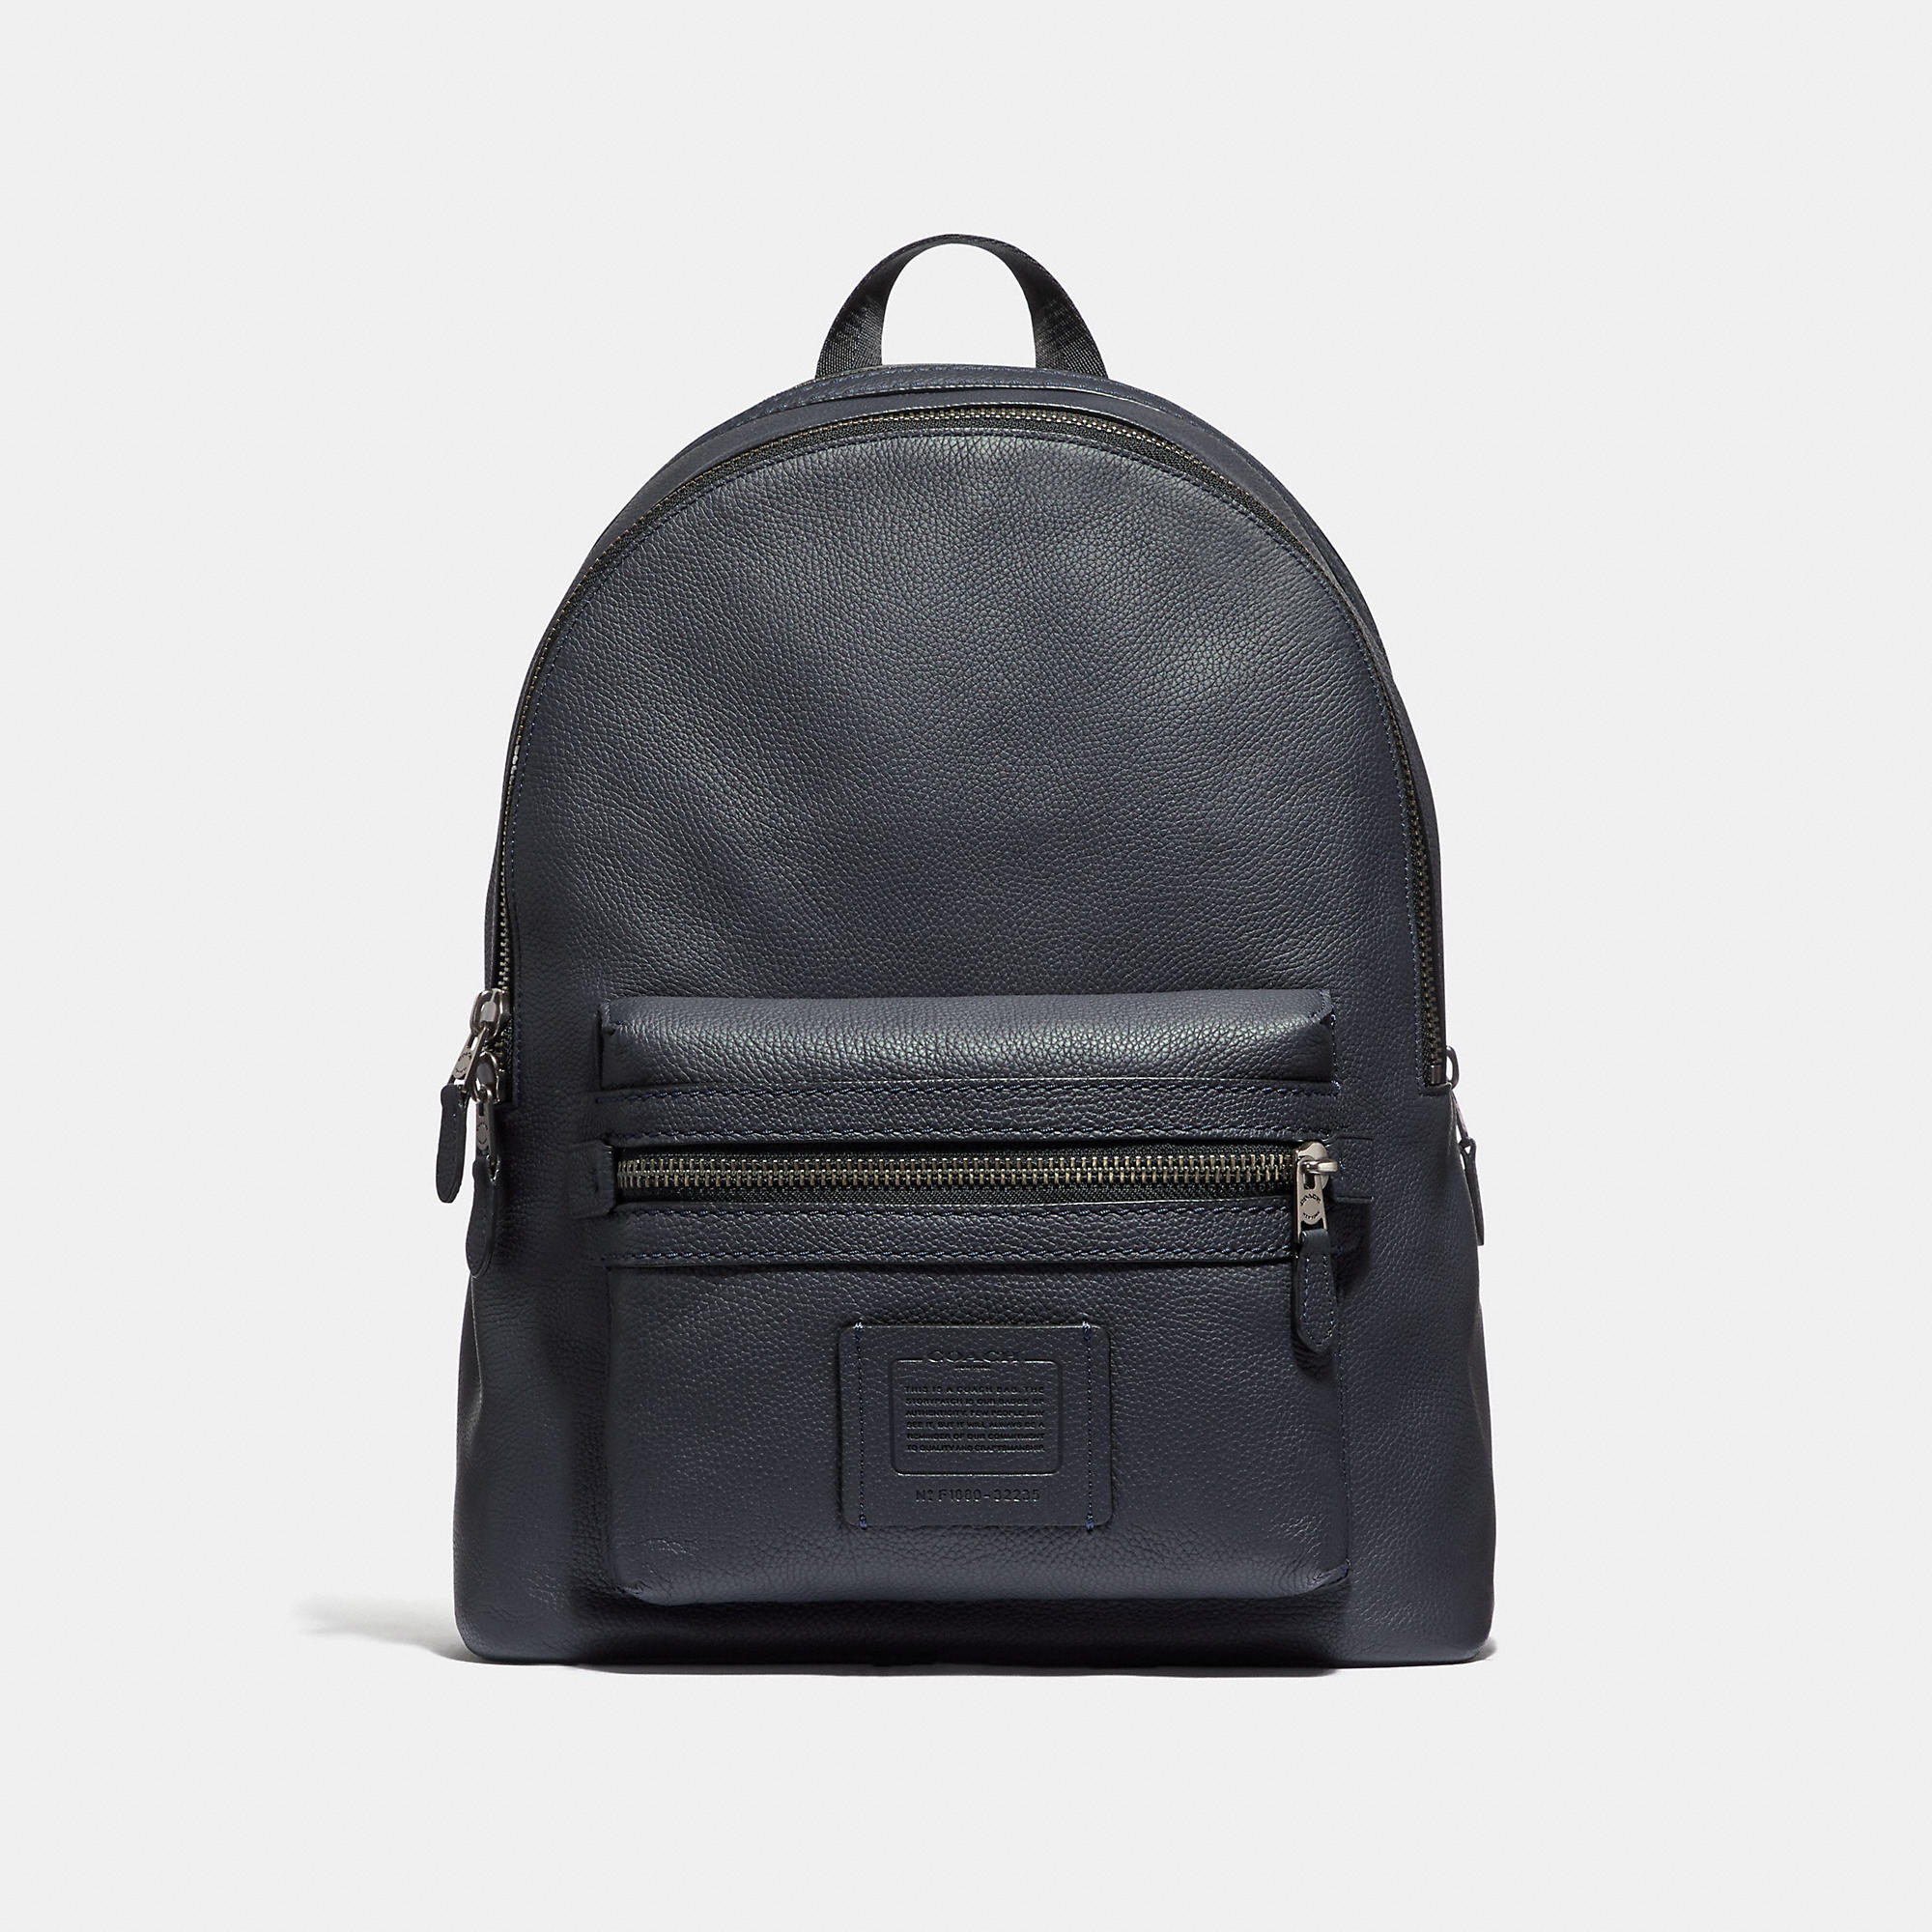 1c802aff37 Coach Academy Pebbled Leather Backpack In Midnight Navy Black Copper Finish